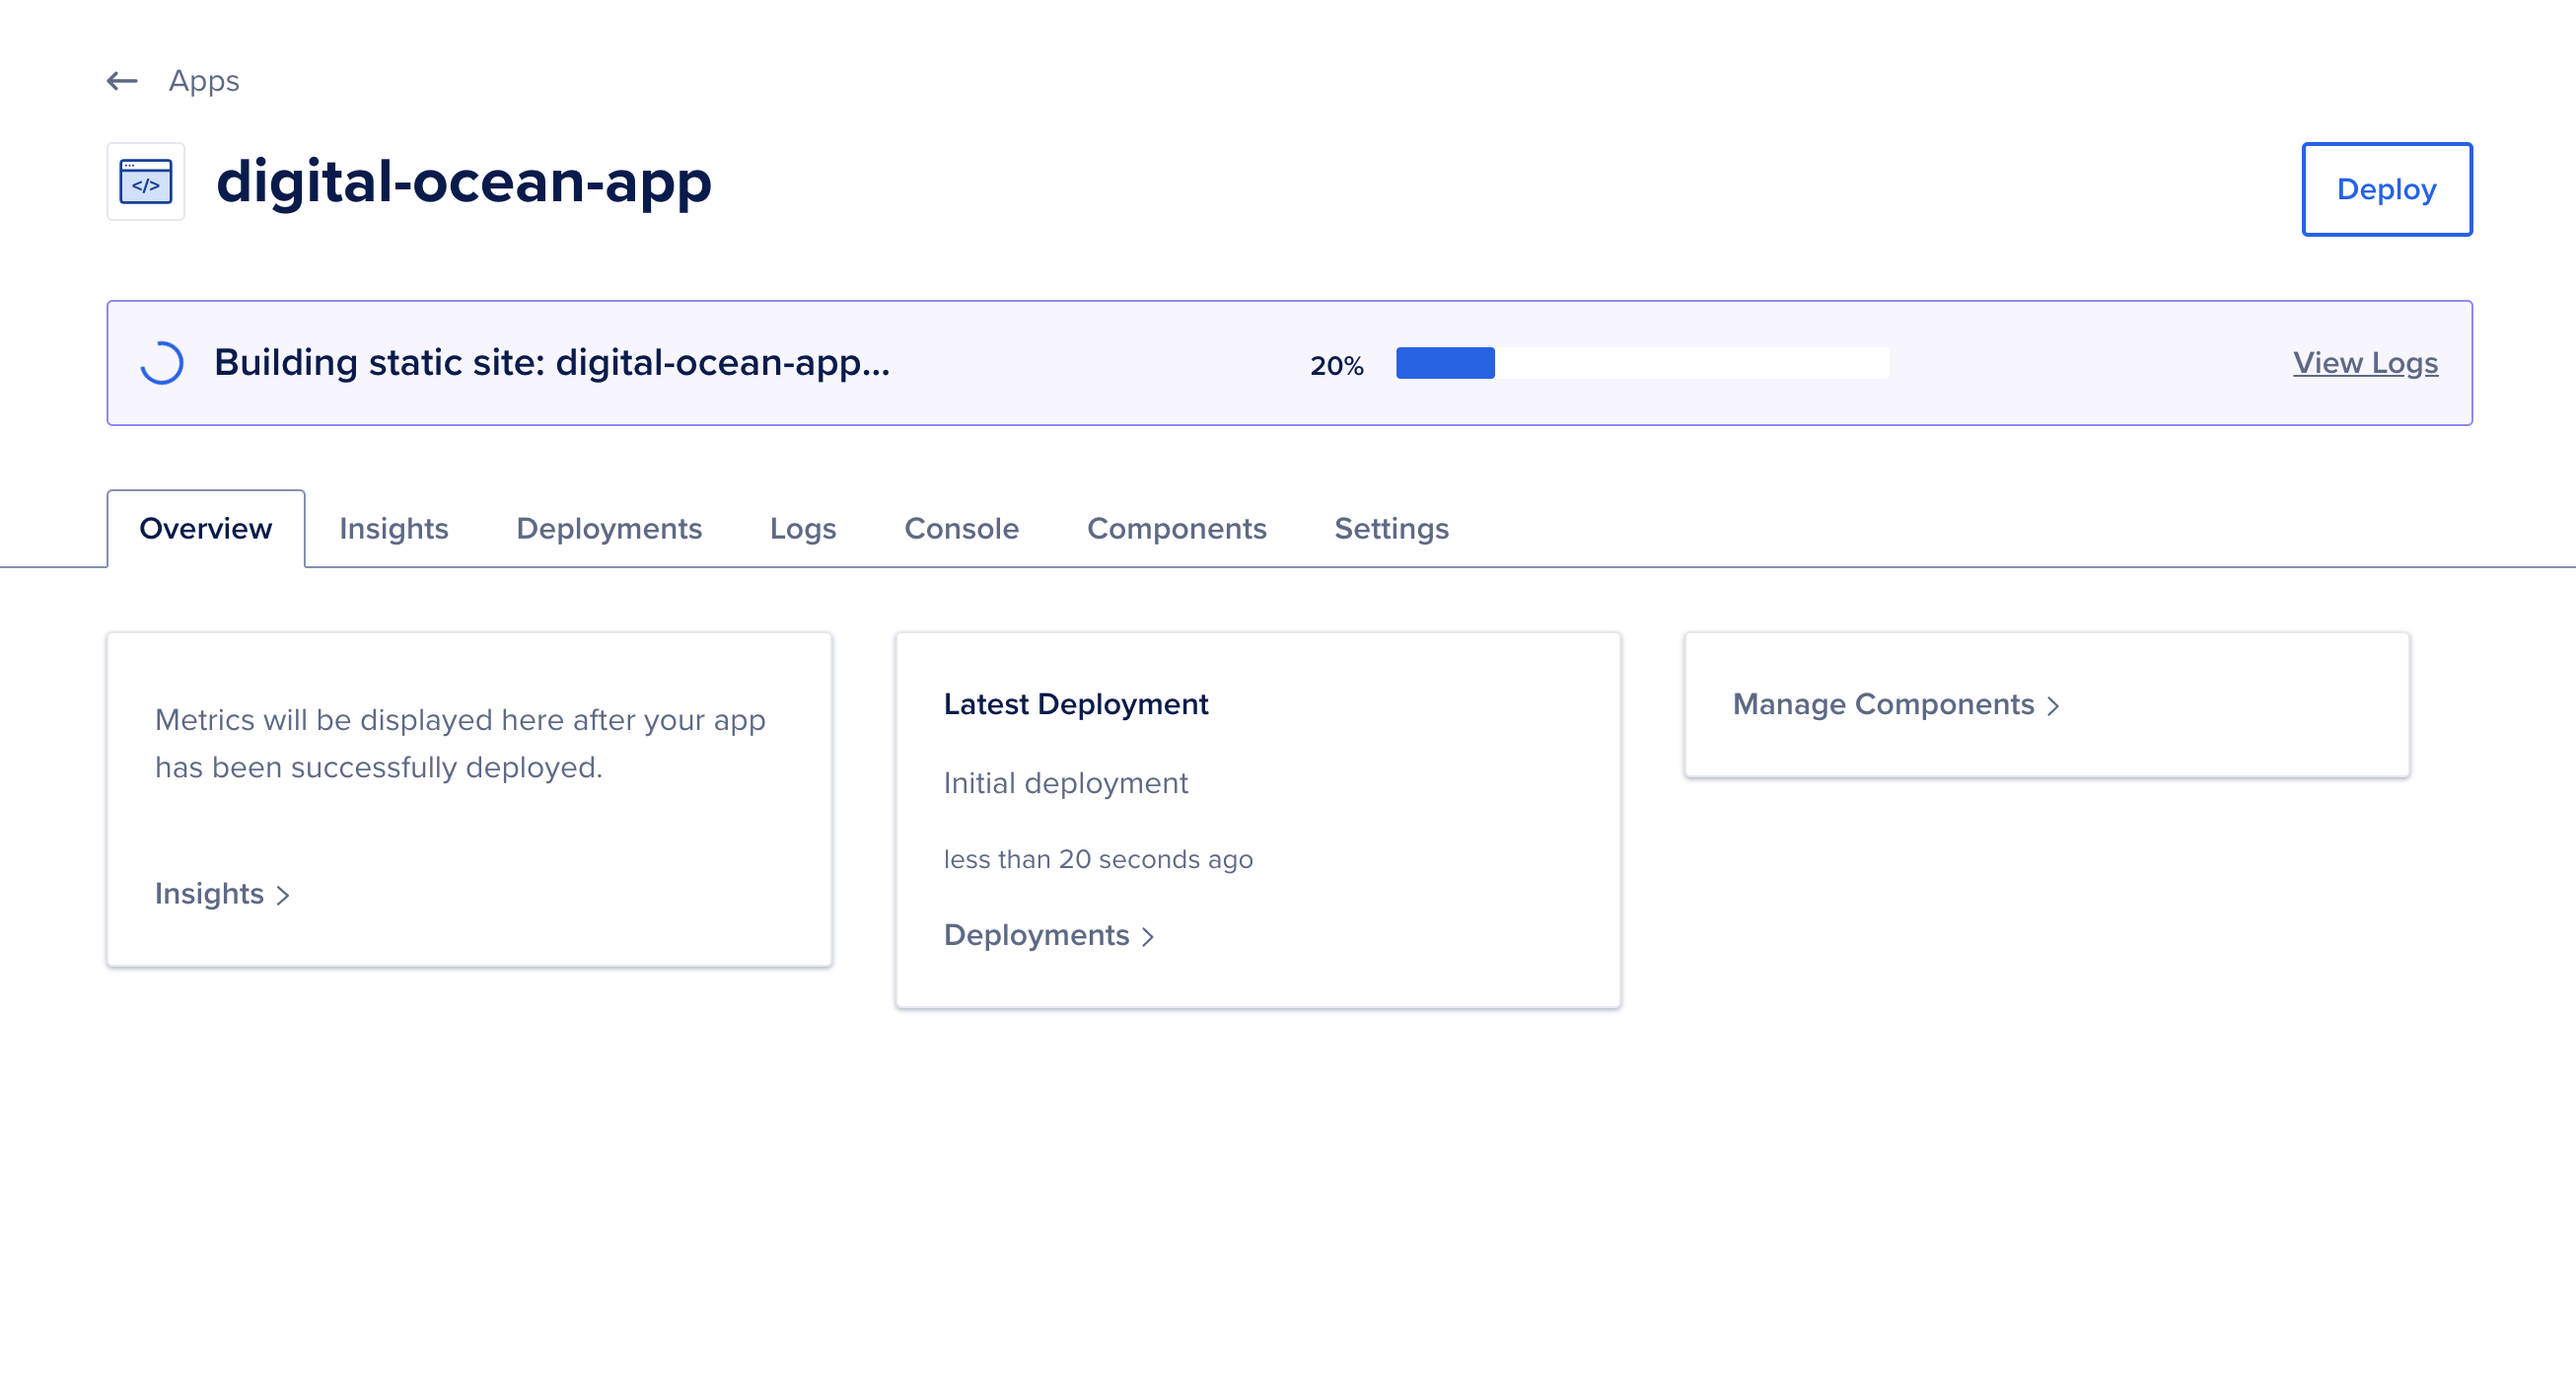 DigitalOcean is building the application page